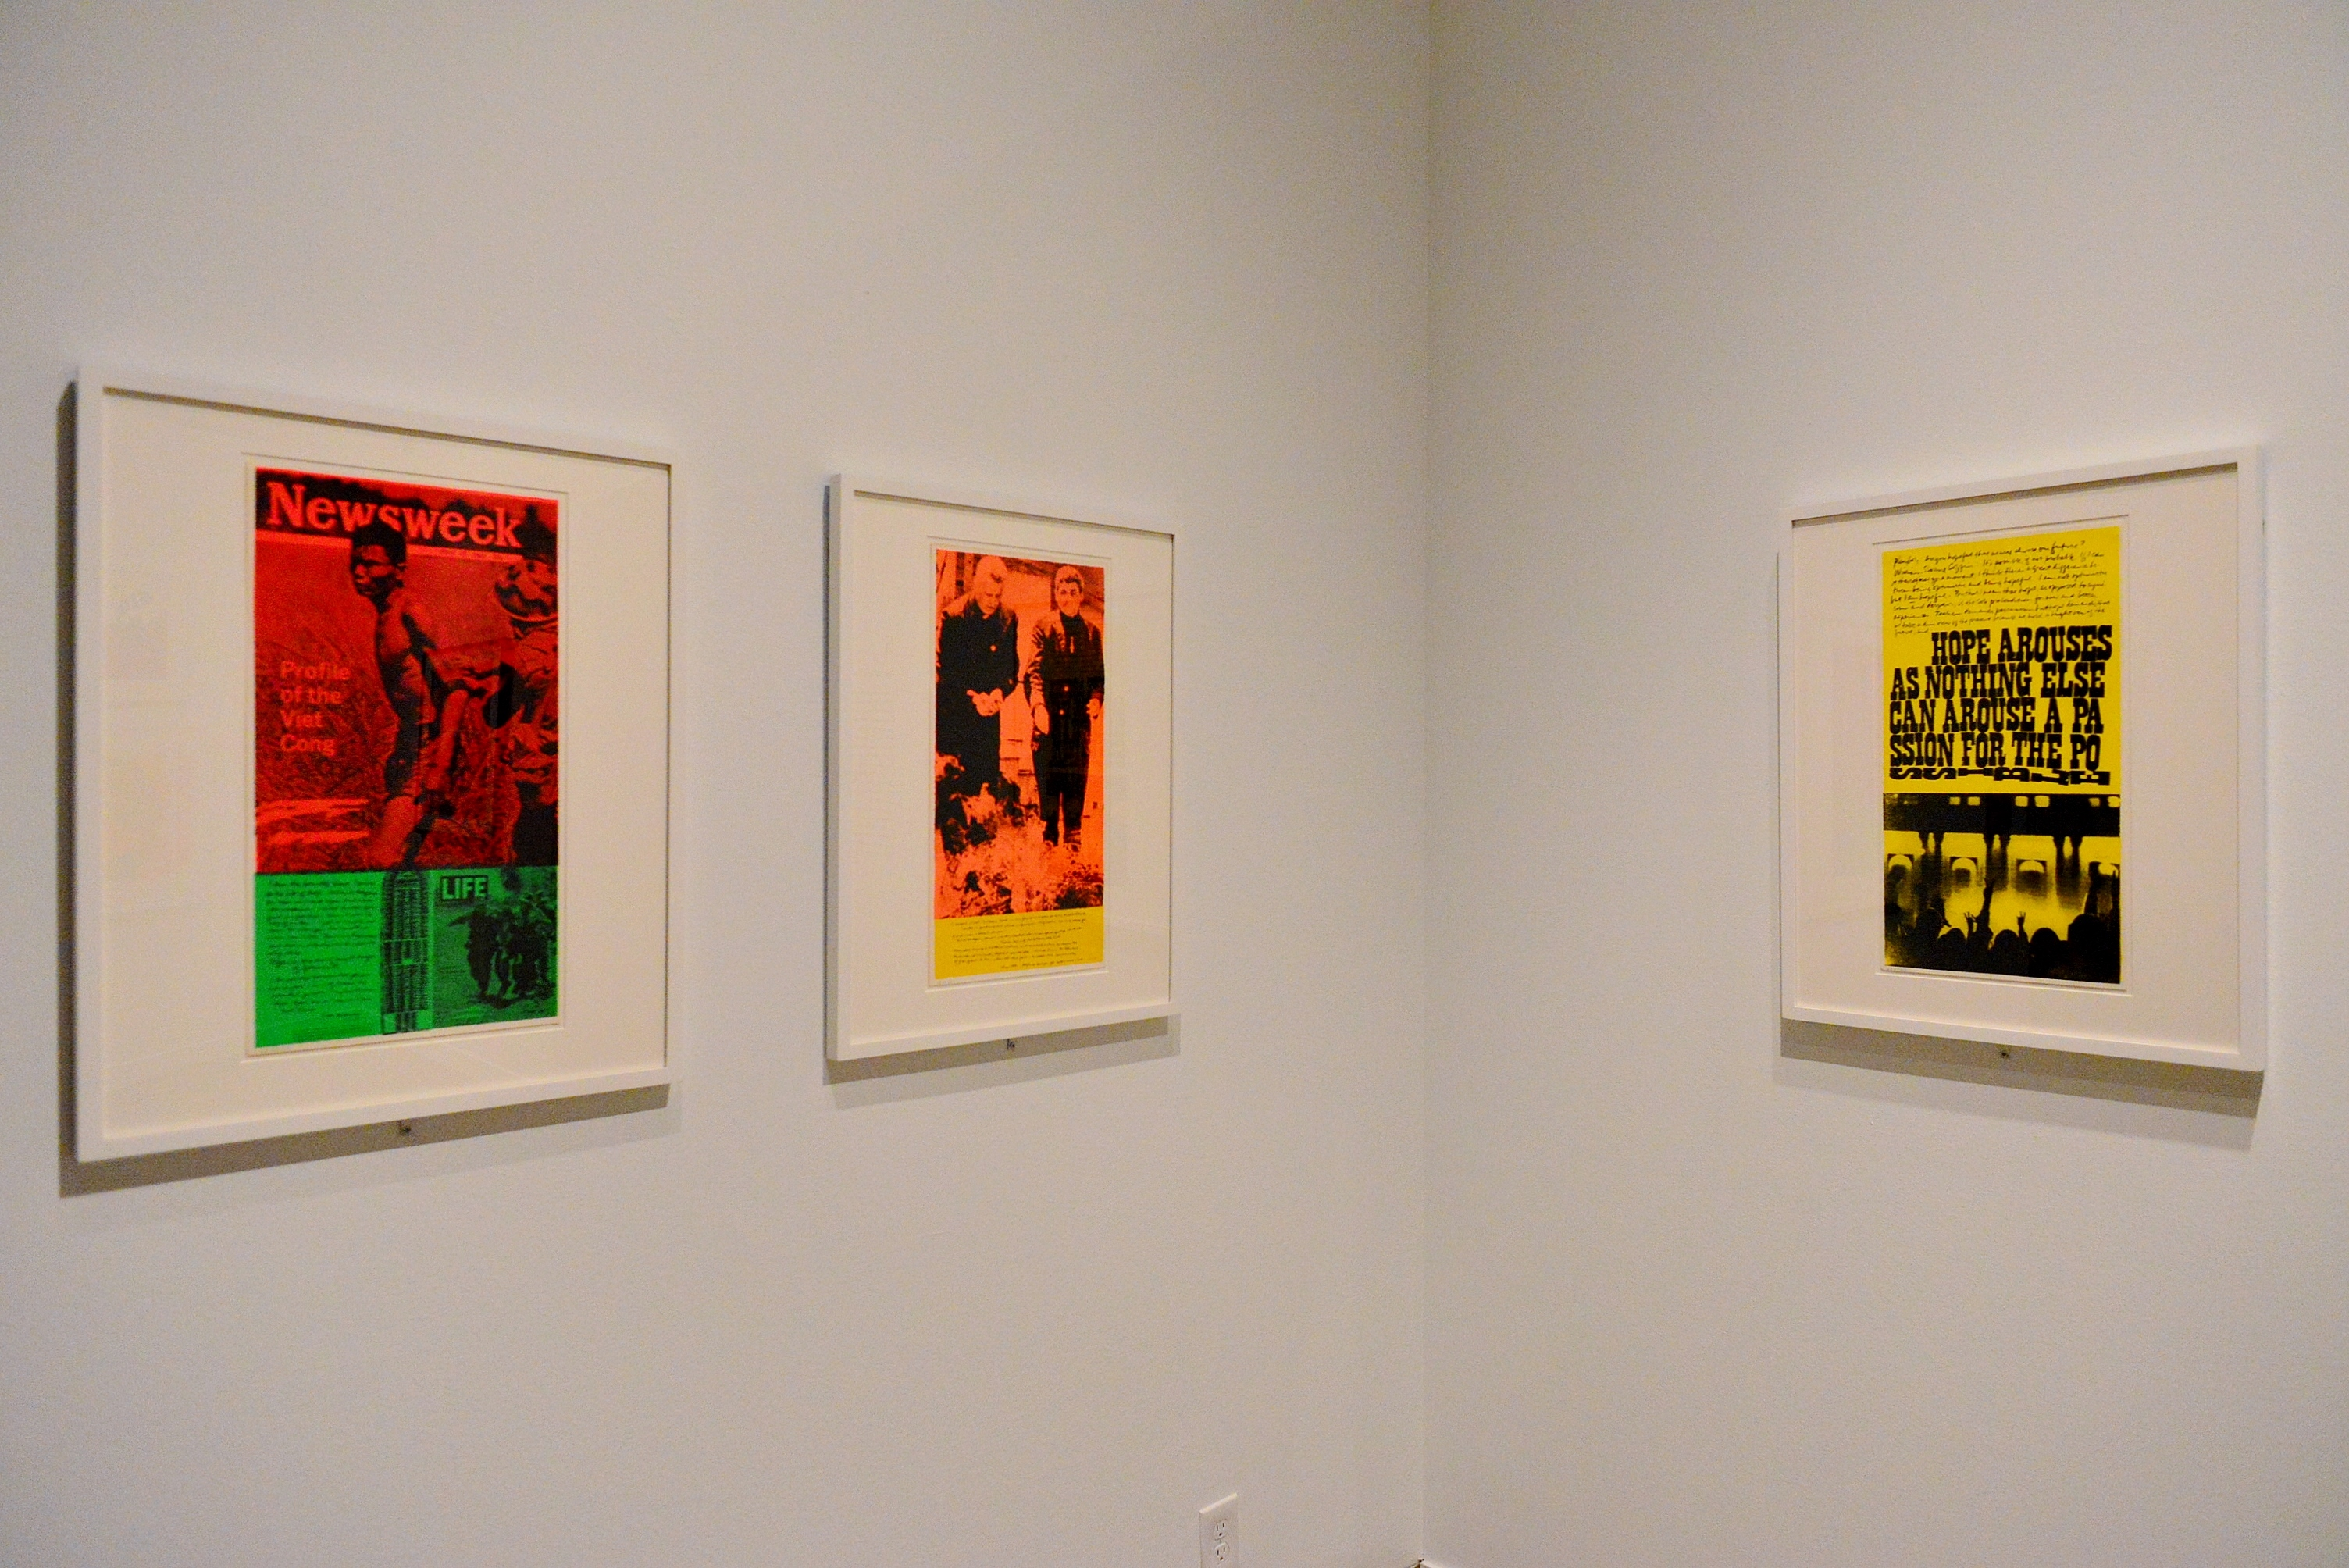 news of the week, phil and dan, a passion for the possible (l-r) by Corita Kent